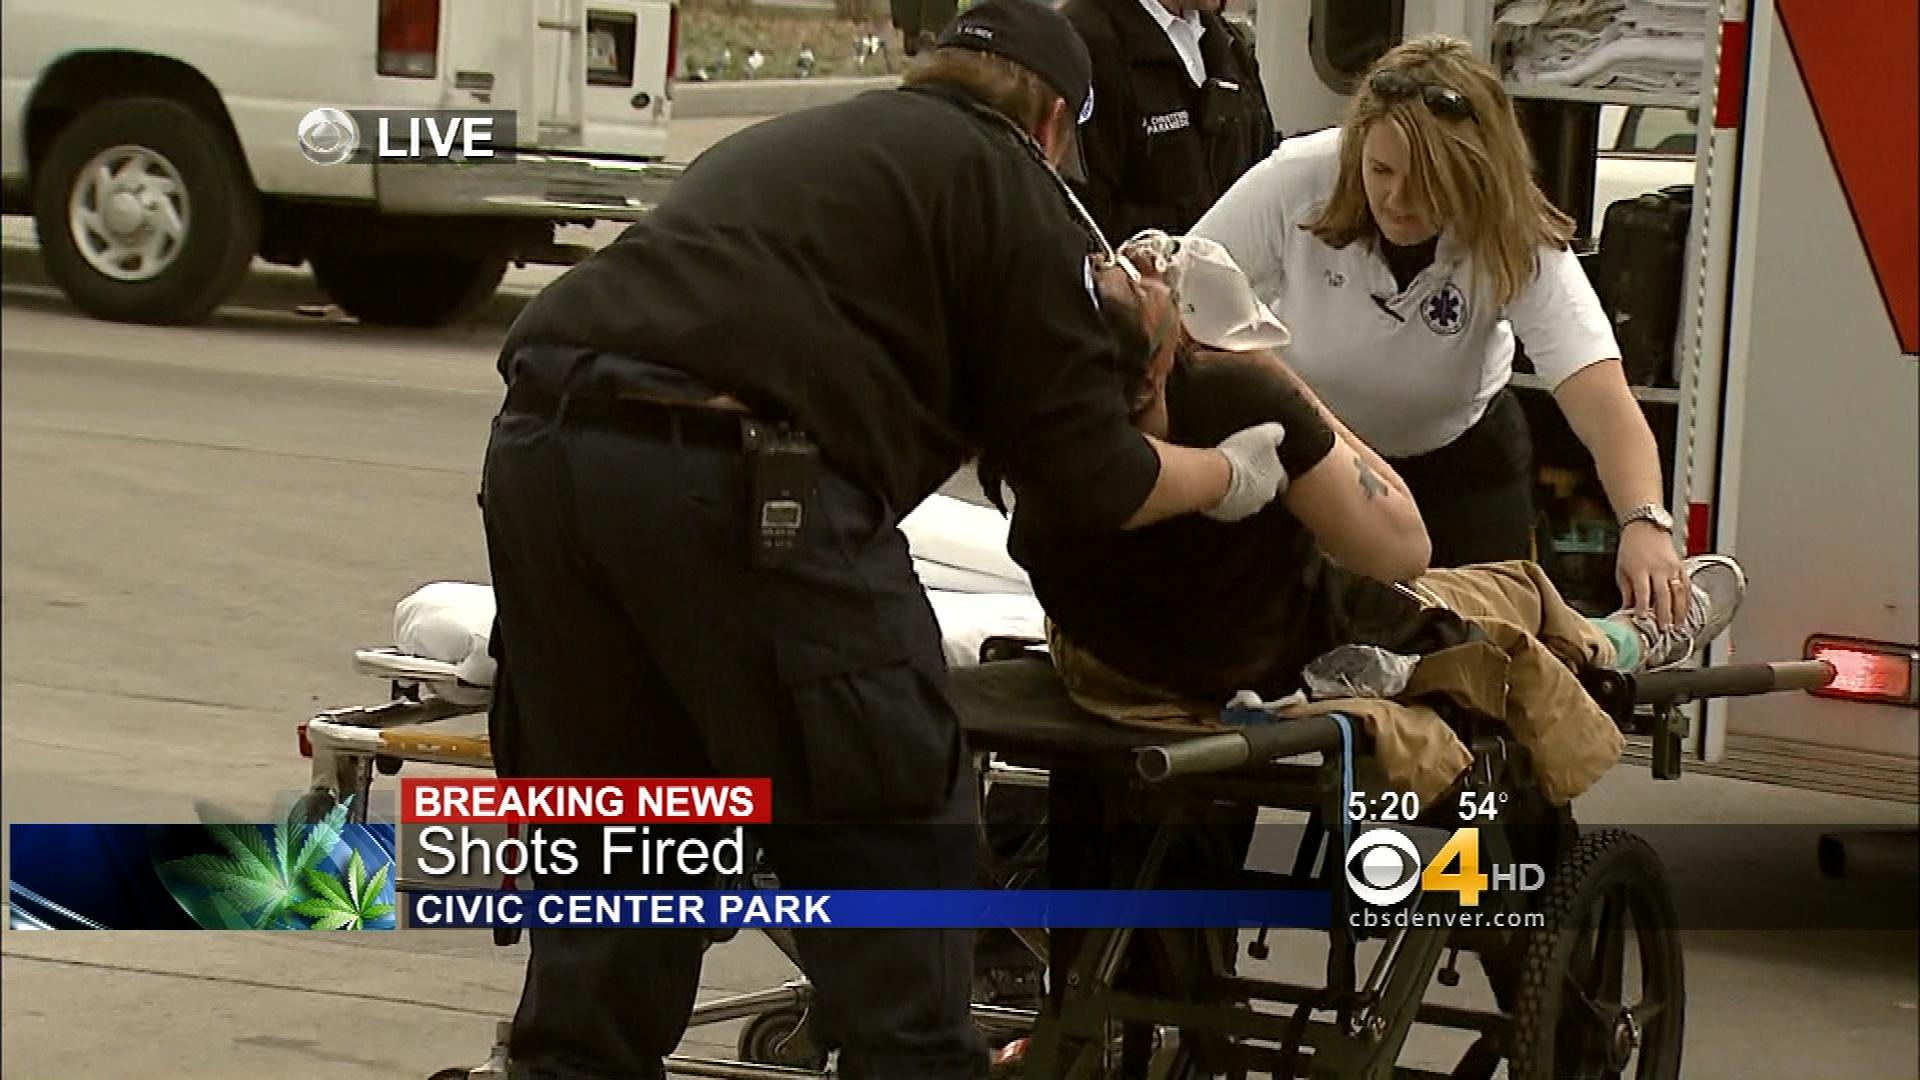 The man being loaded into an ambulance (credit: CBS)